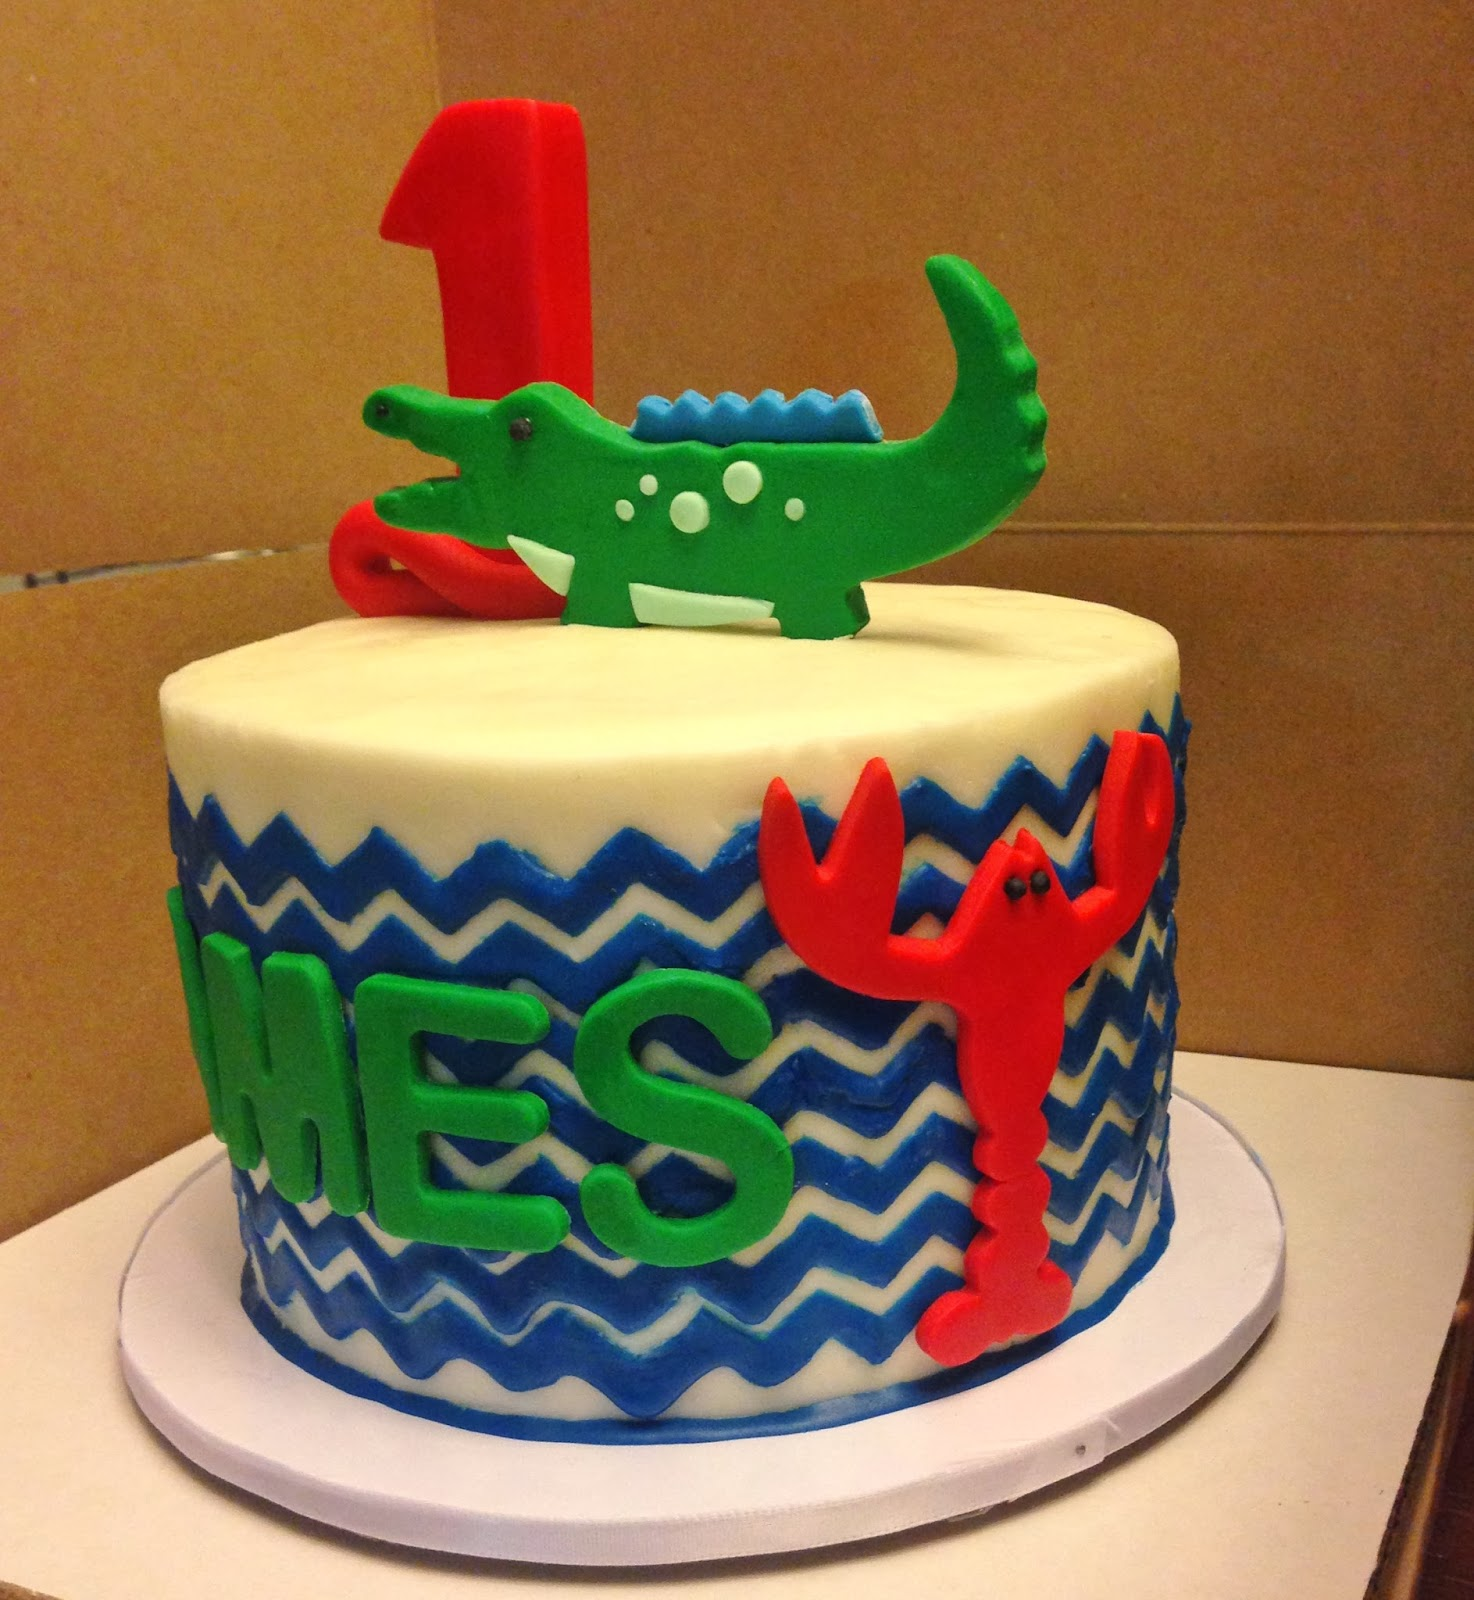 Cakes by mindy alligator and crawfish chevron cake 6 alligator and crawfish chevron cake 6 maxwellsz